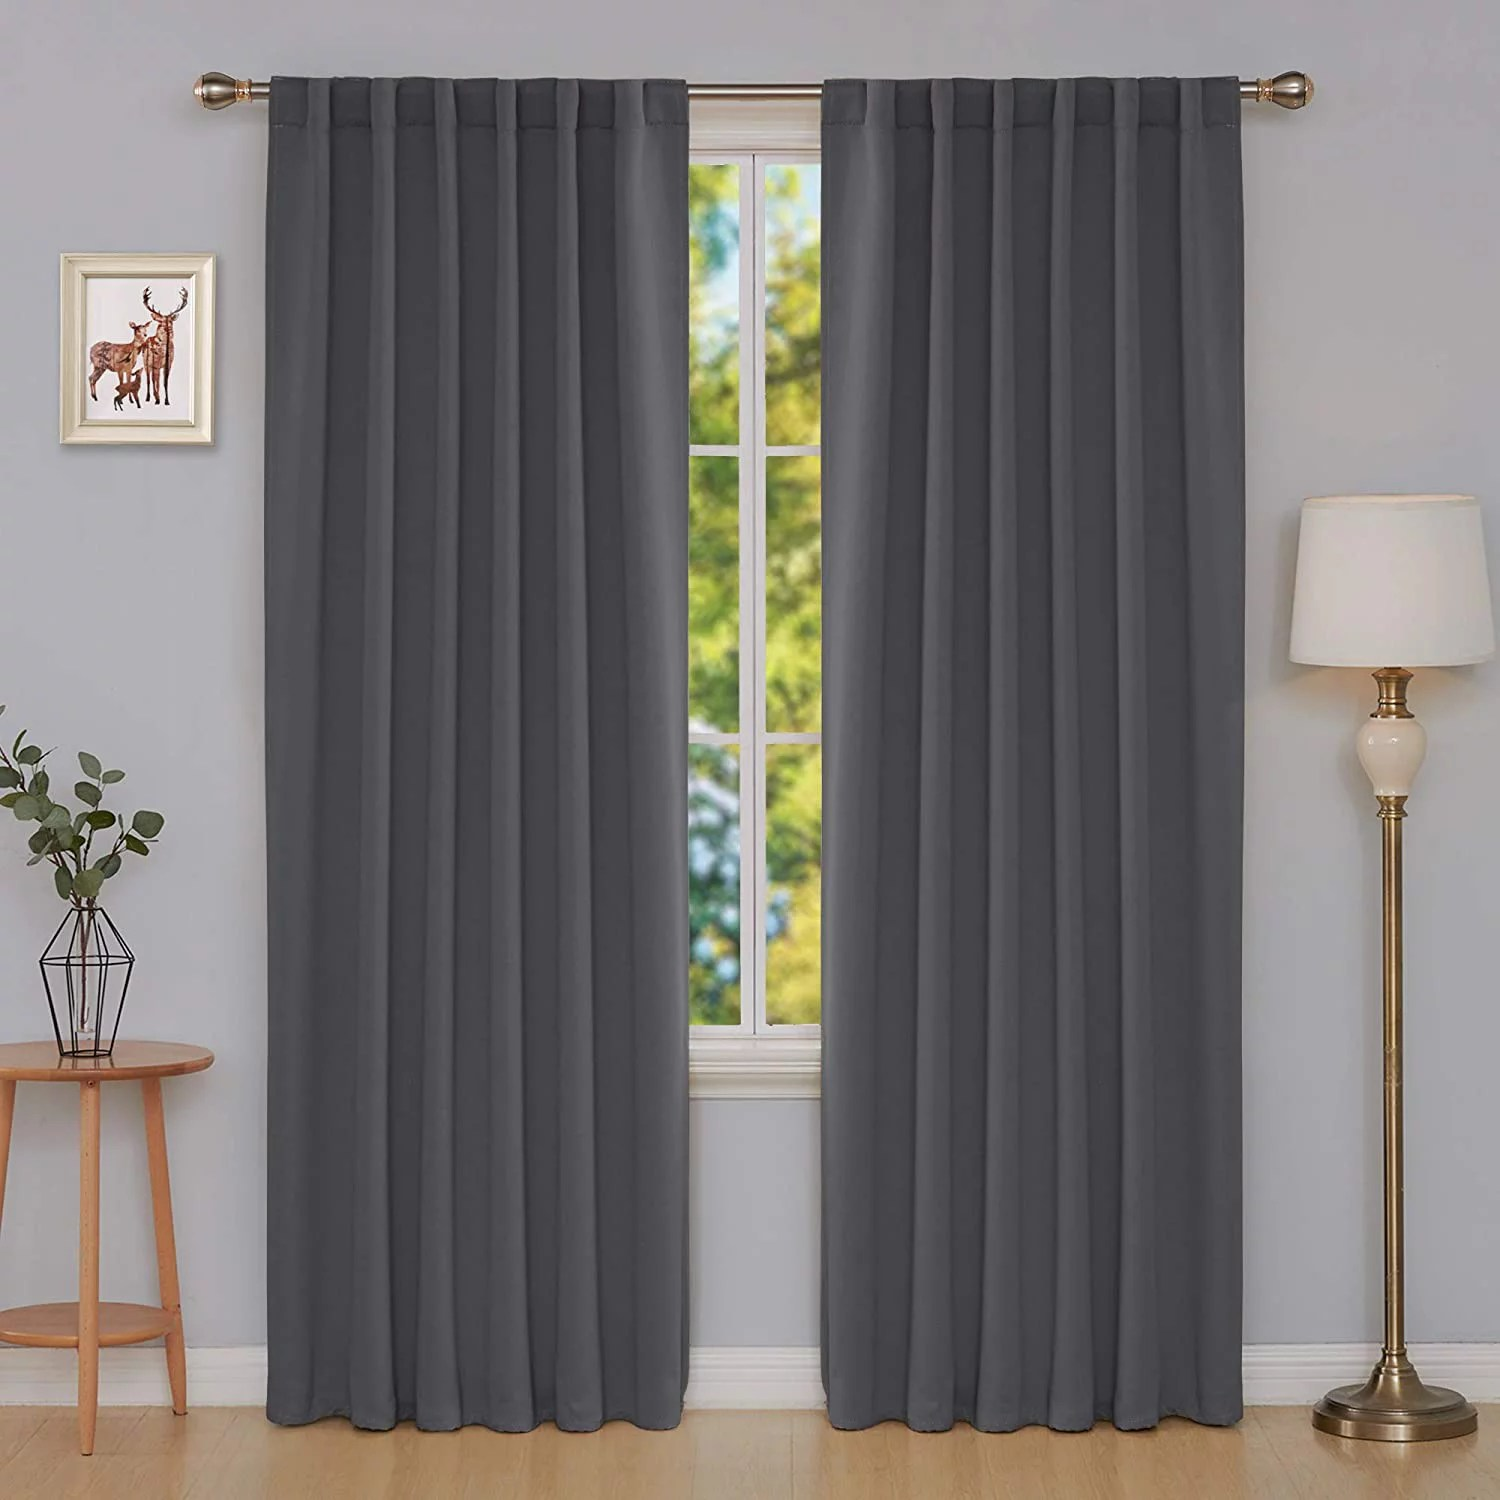 deconovo long blackout patio door curtains back tab and rod pocket thermal insulated room darkening curtains for window 52x108 inch dark grey 2 panels